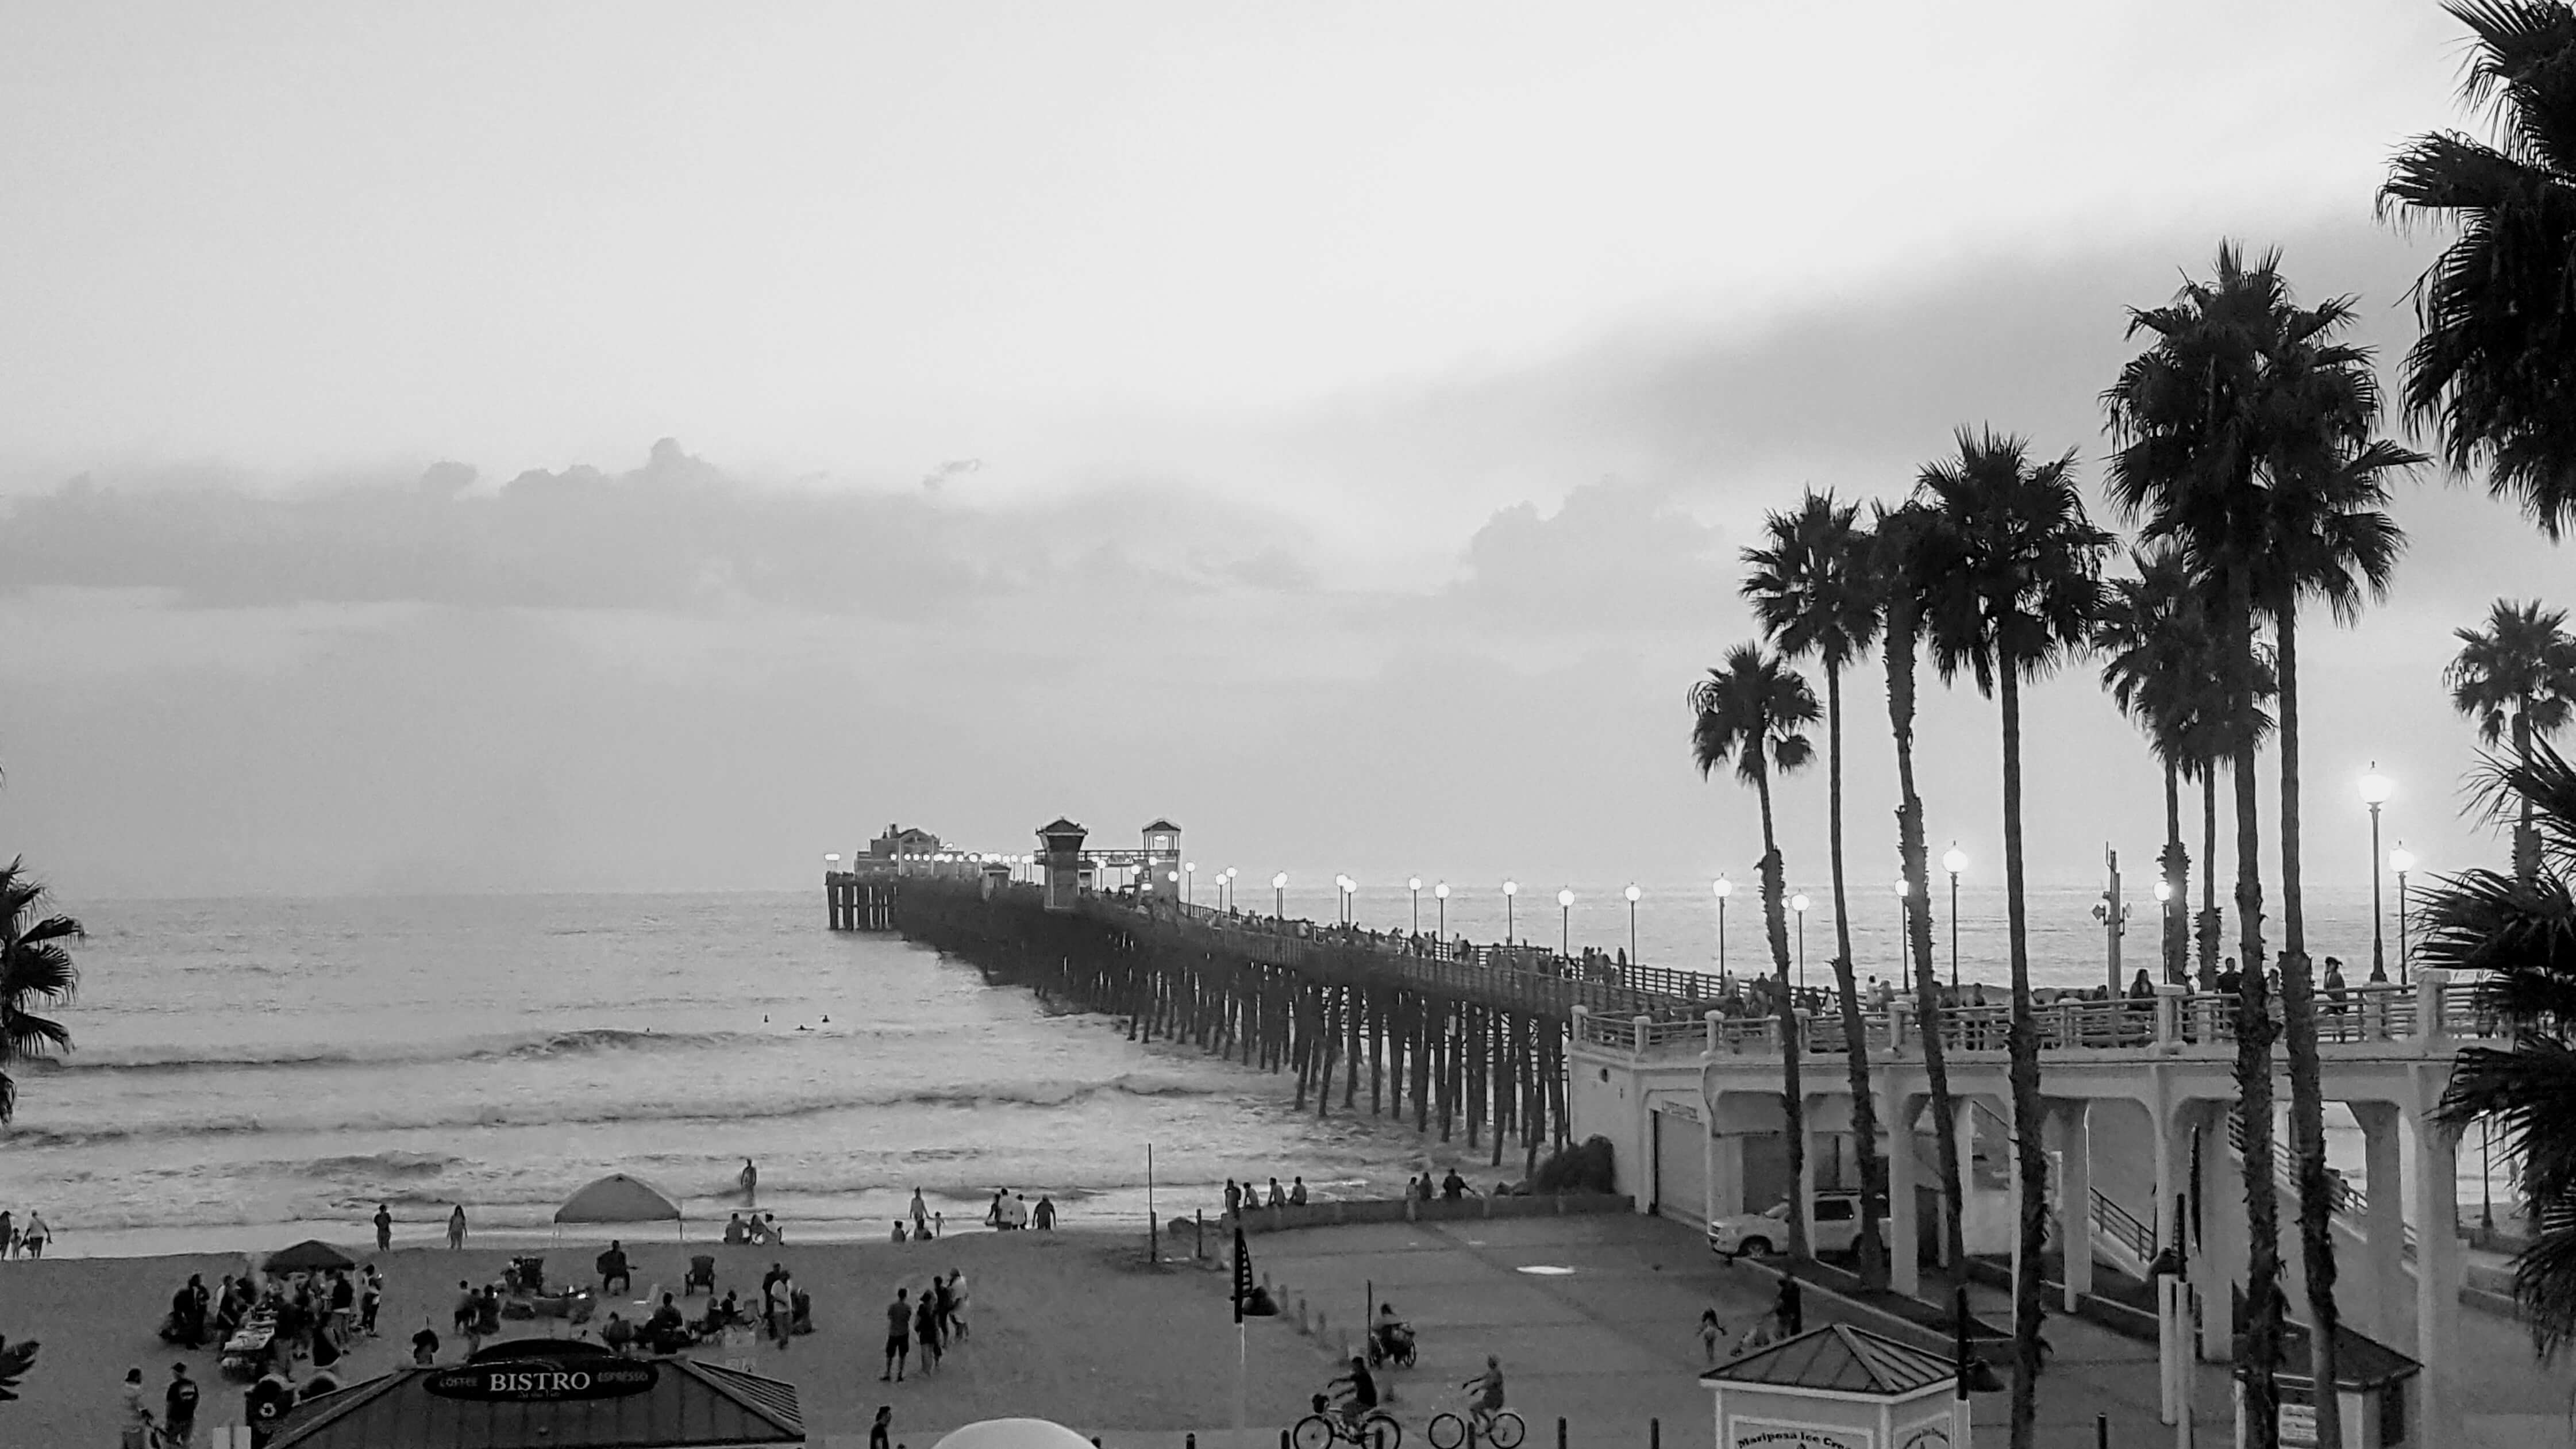 The dreamy Oceanside Pier in black and white